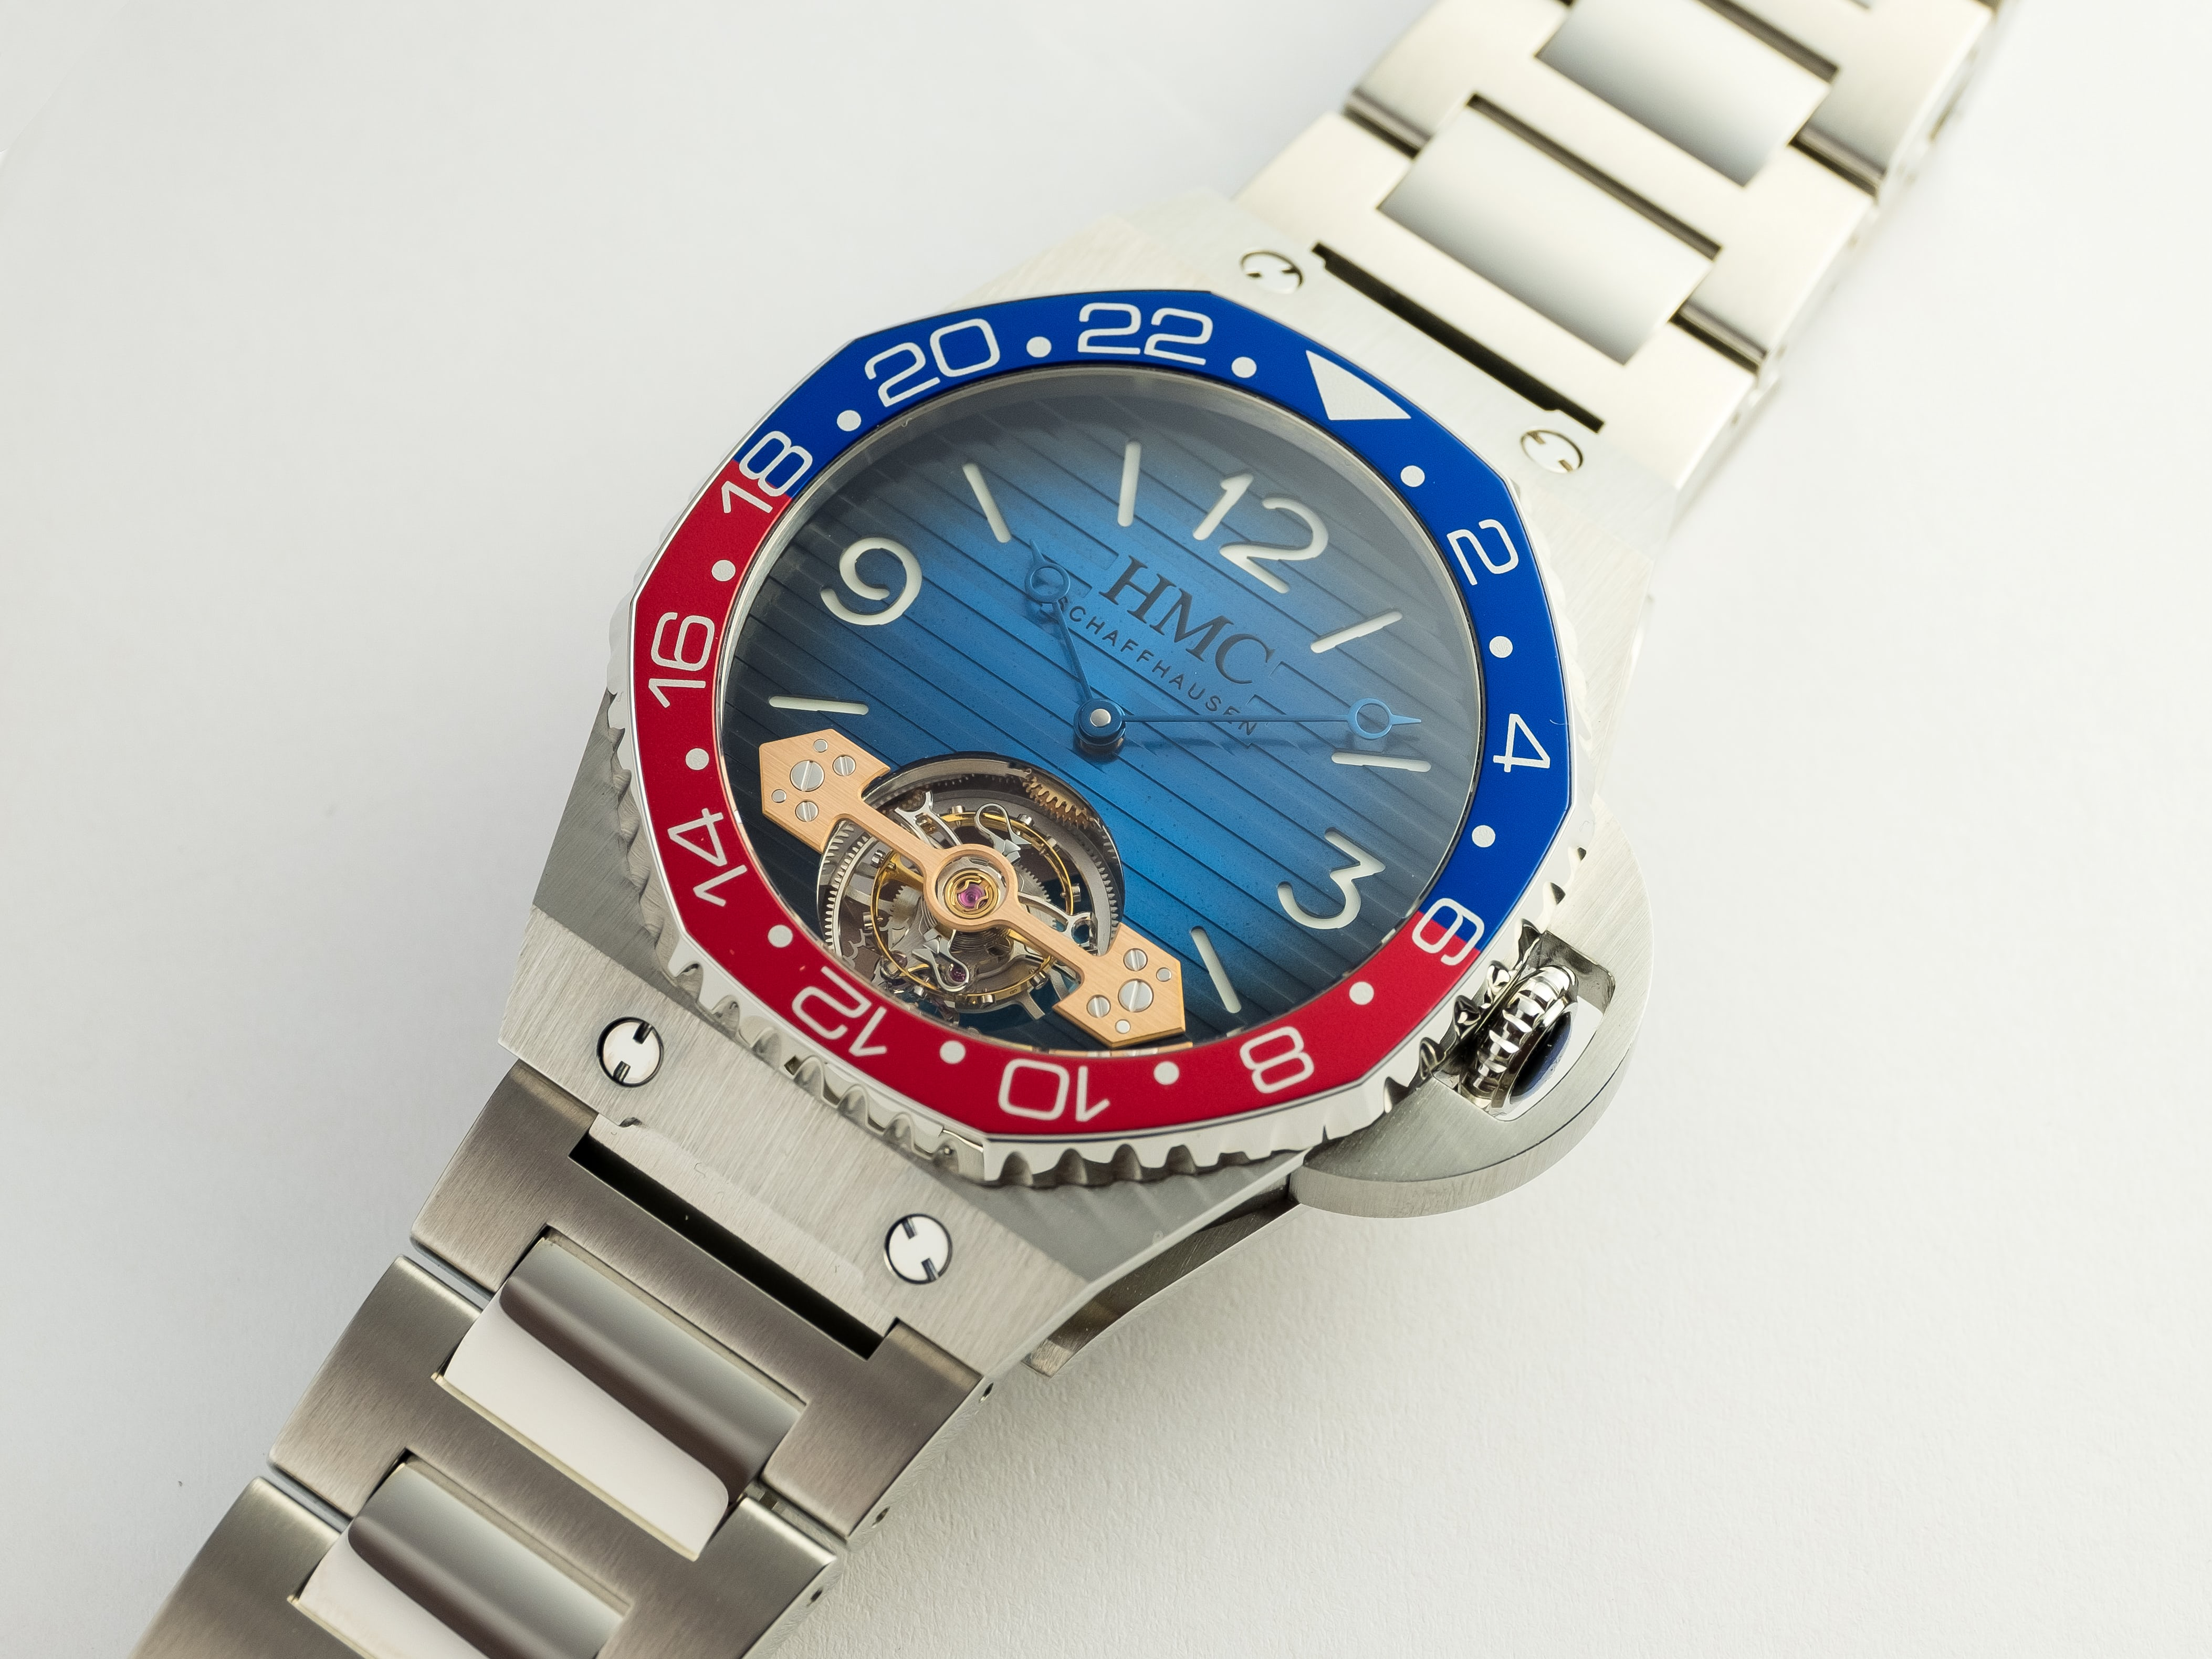 moser - H. Moser Swiss Icons Watch Swiss_Icons_Watch_3804-1200_Lifestyle_1.jpg?ixlib=rails-1.1